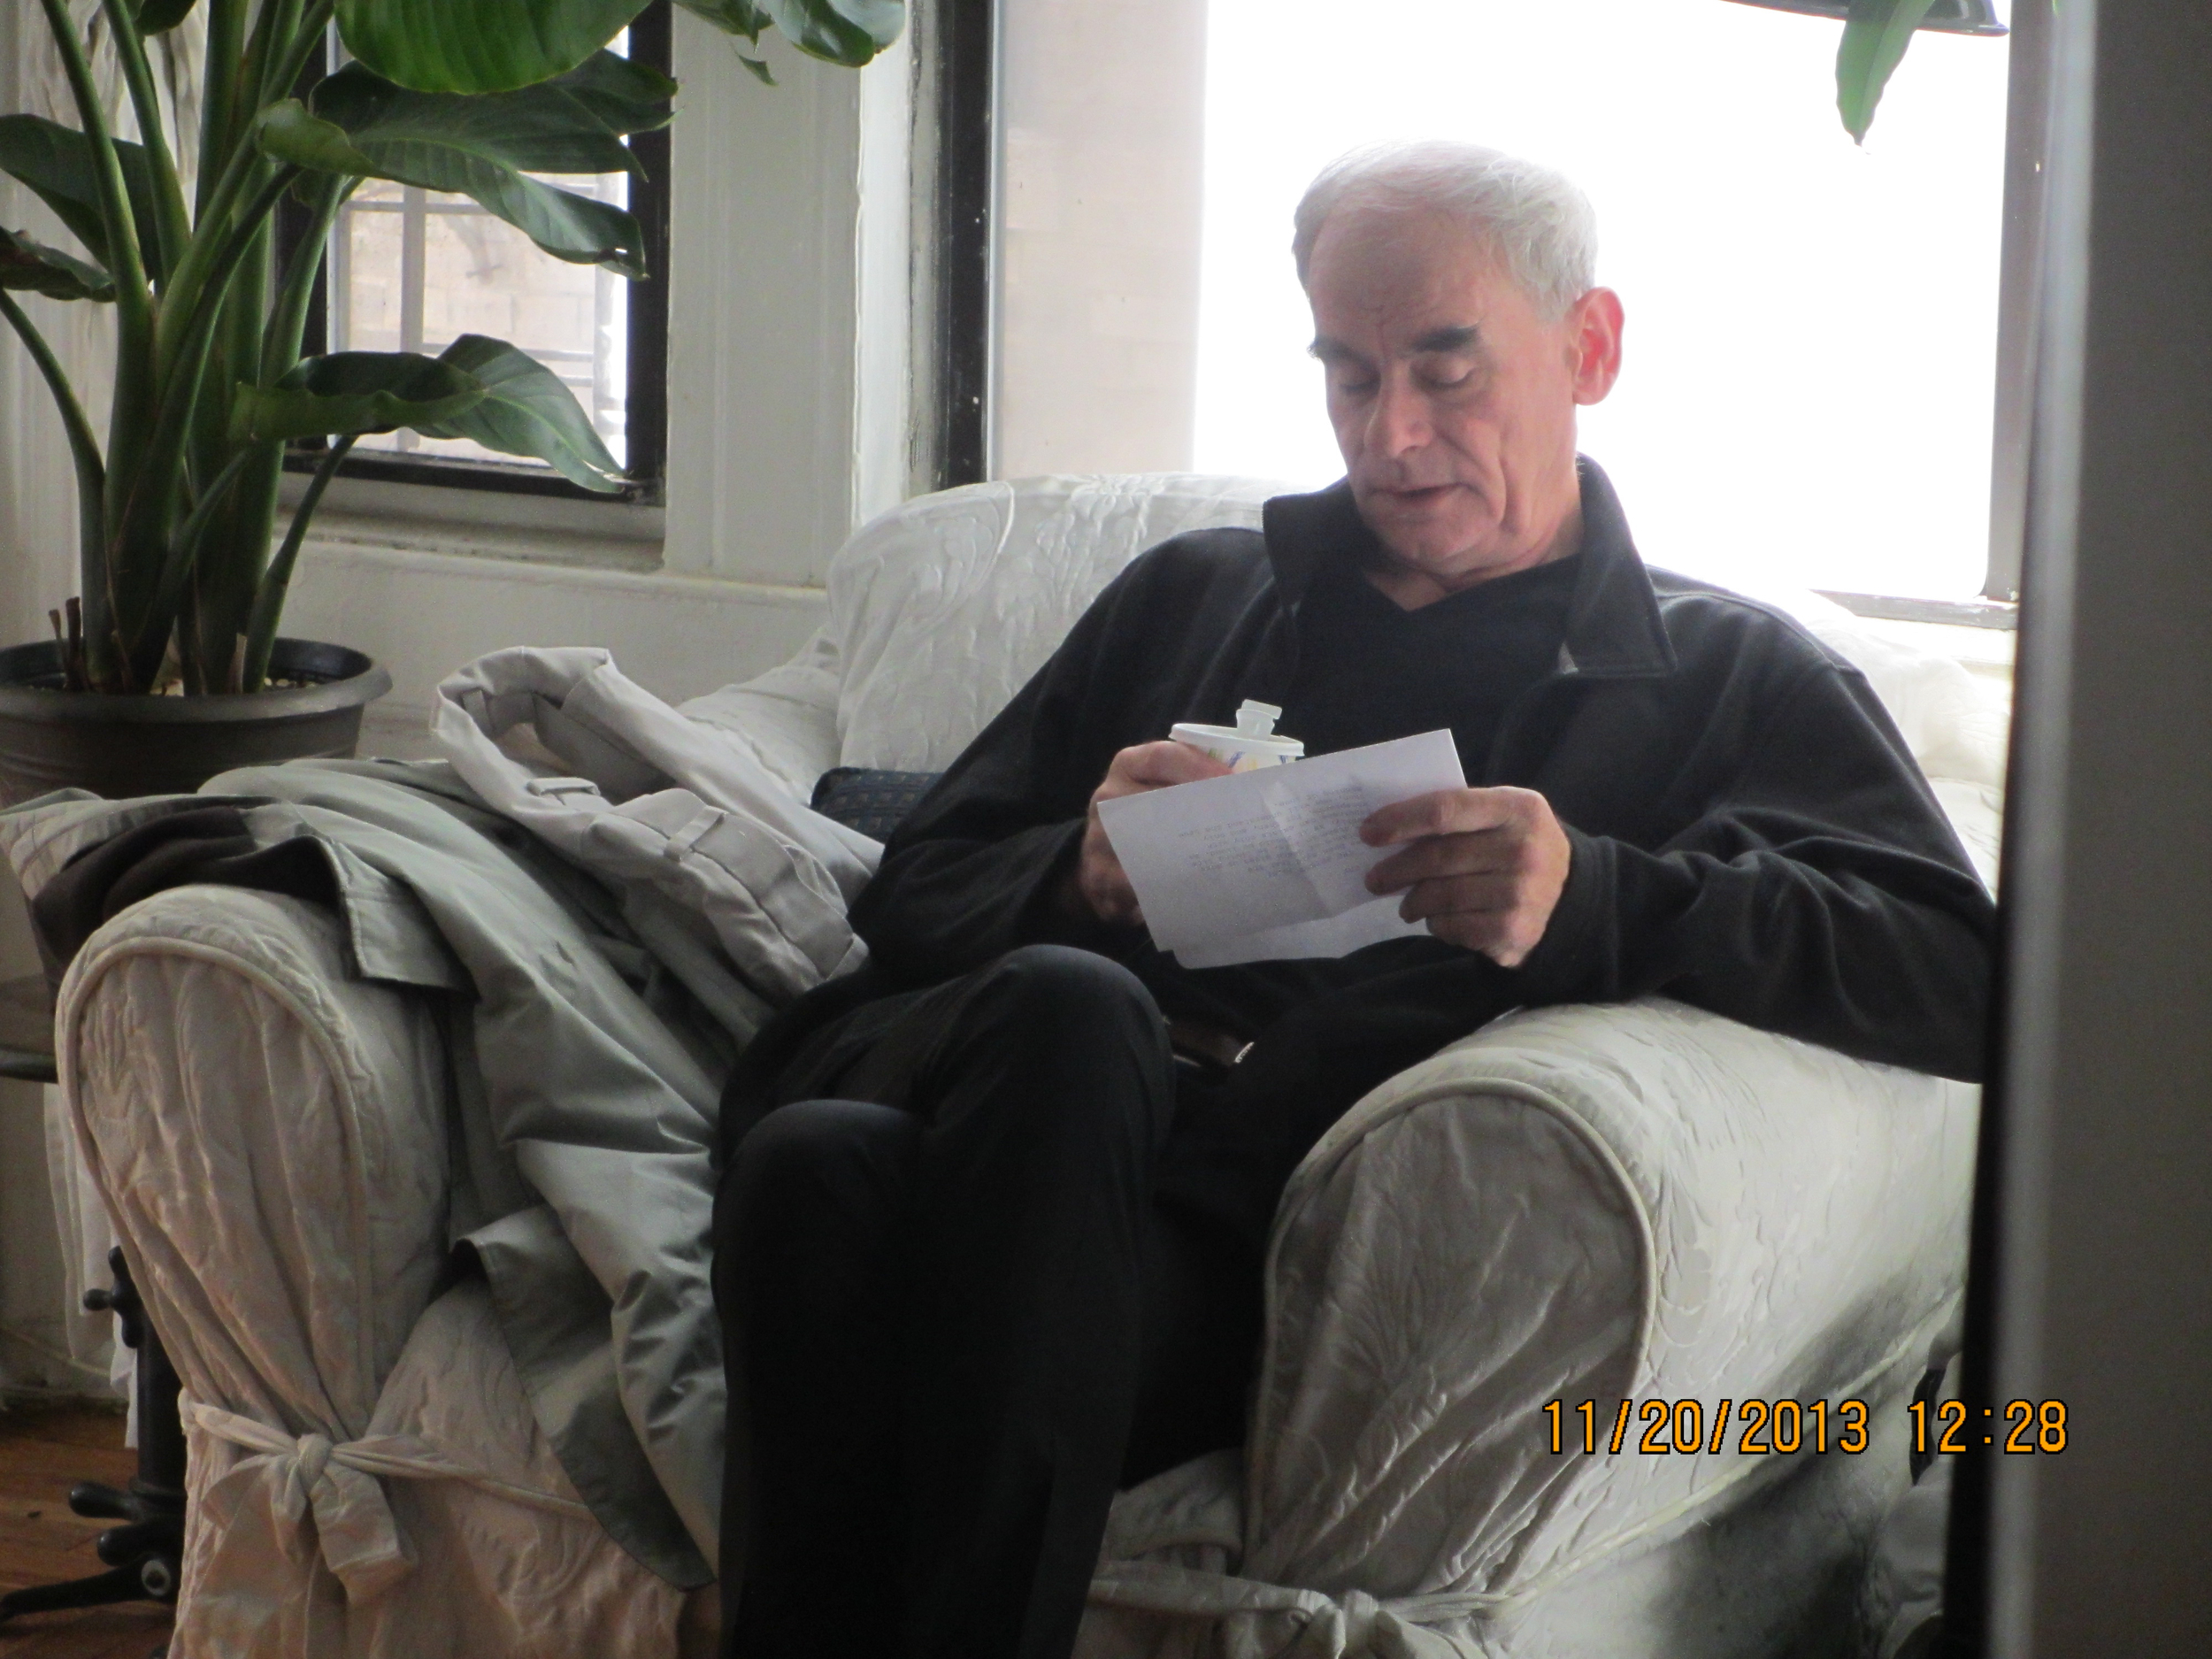 Actor Bill Ingest (Priest) going over his lines before on the morning of the shoot.